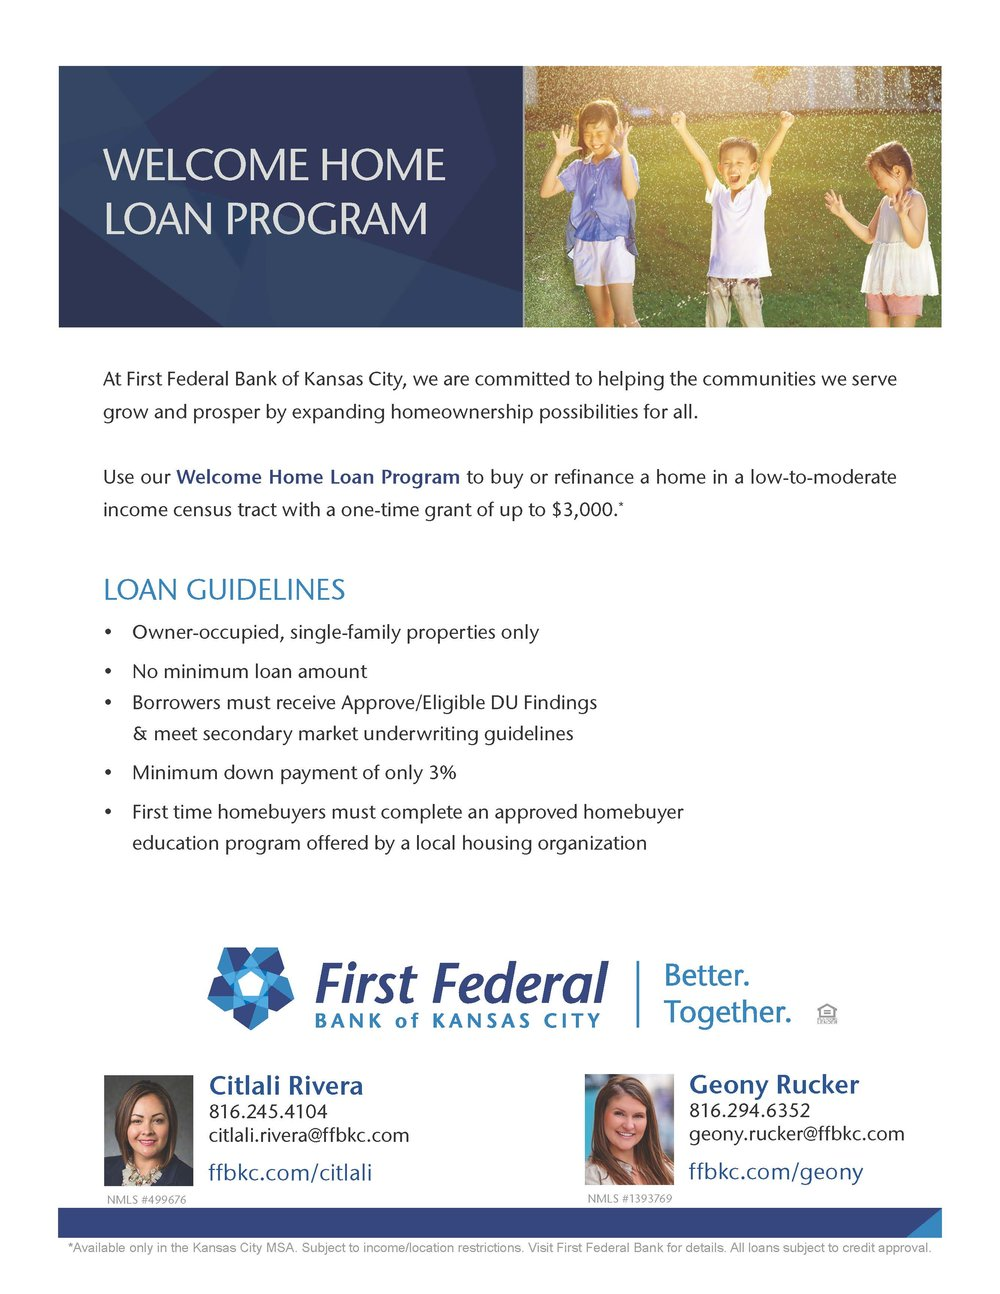 Community Loan Program Rivera and Rucker 2-2019.jpg